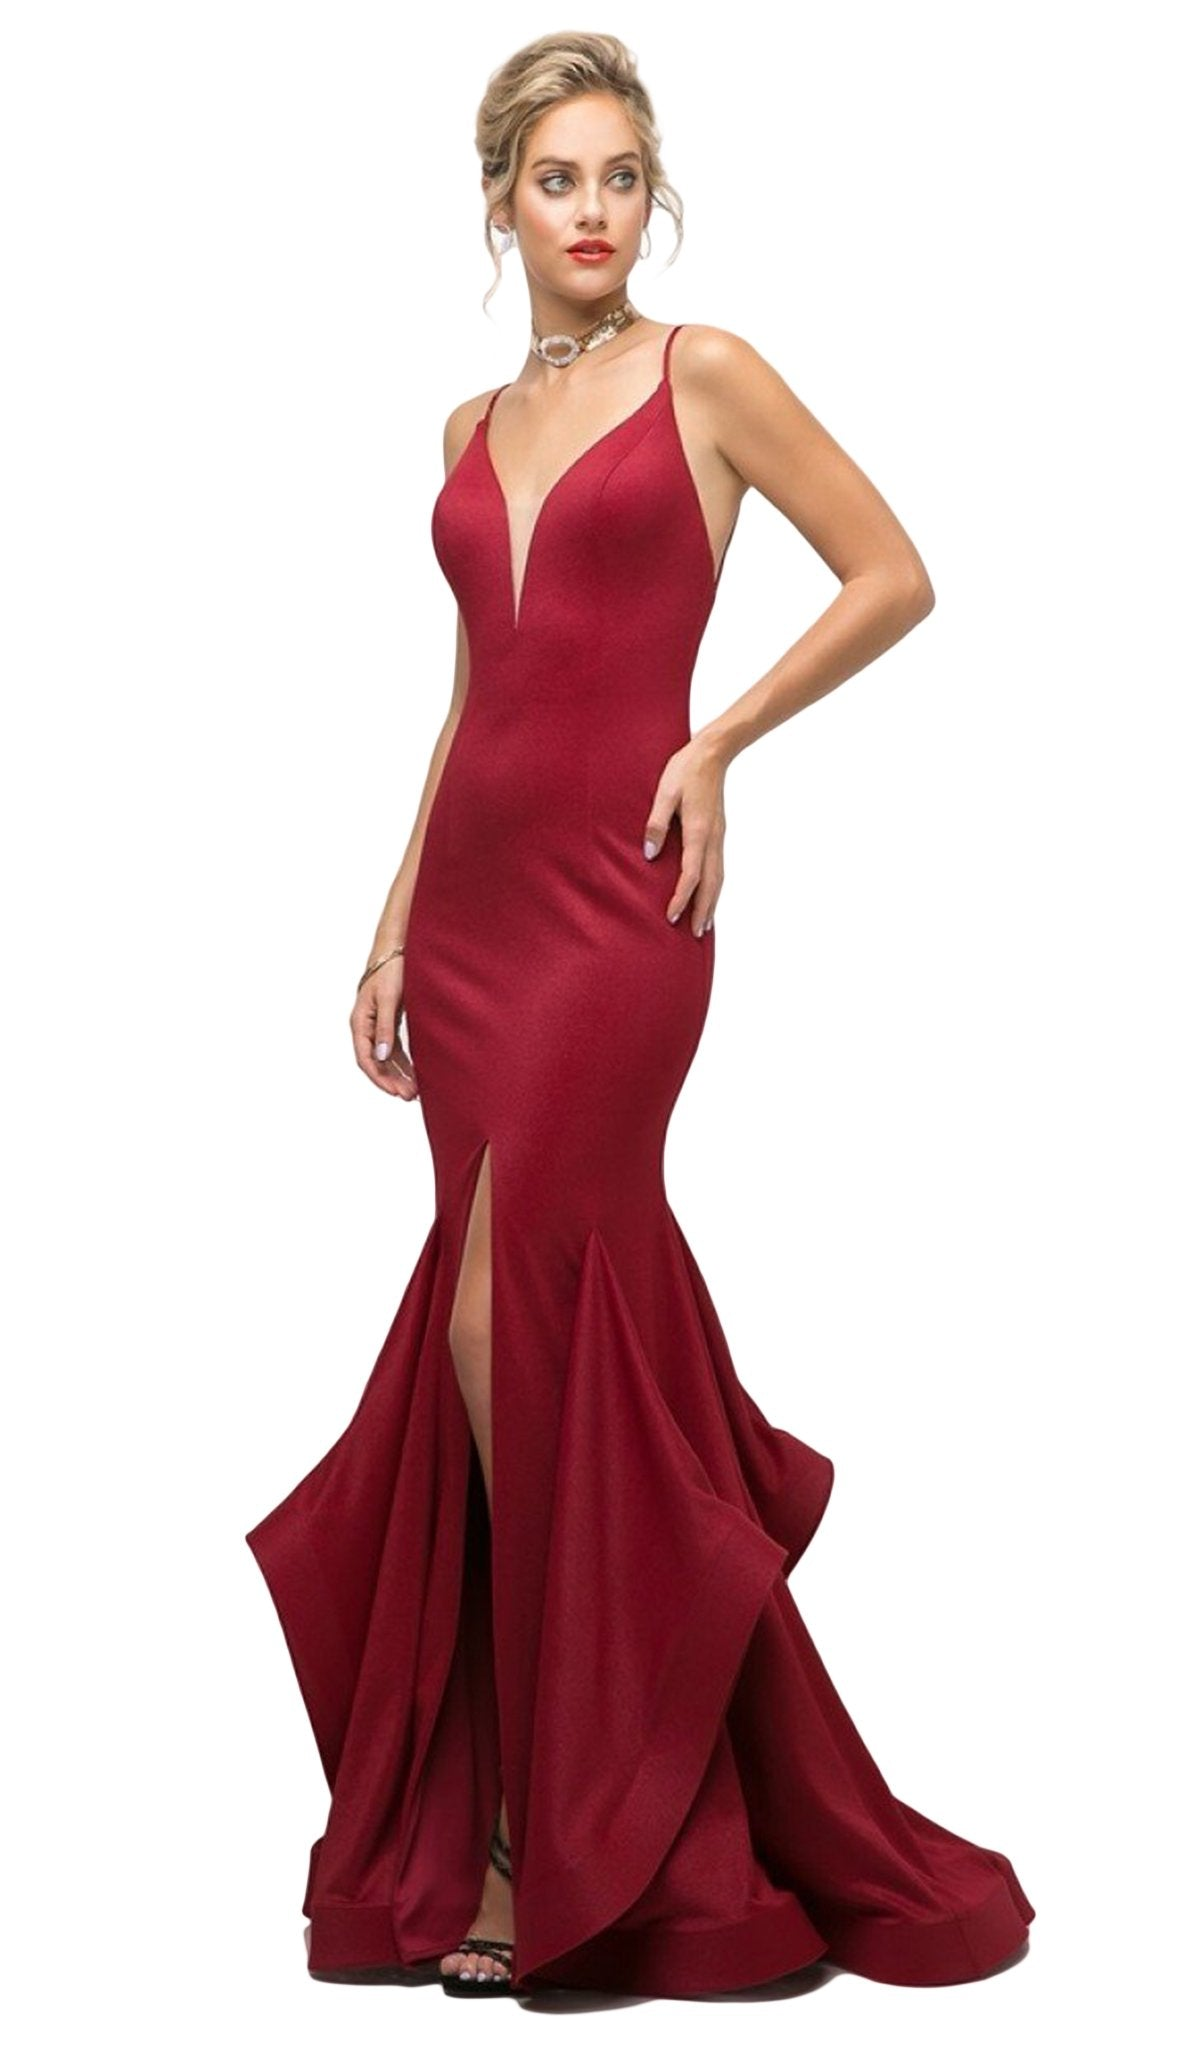 Cinderella Divine - UE006 Fitted V-Neck Stretch Knit Mermaid Gown In Red